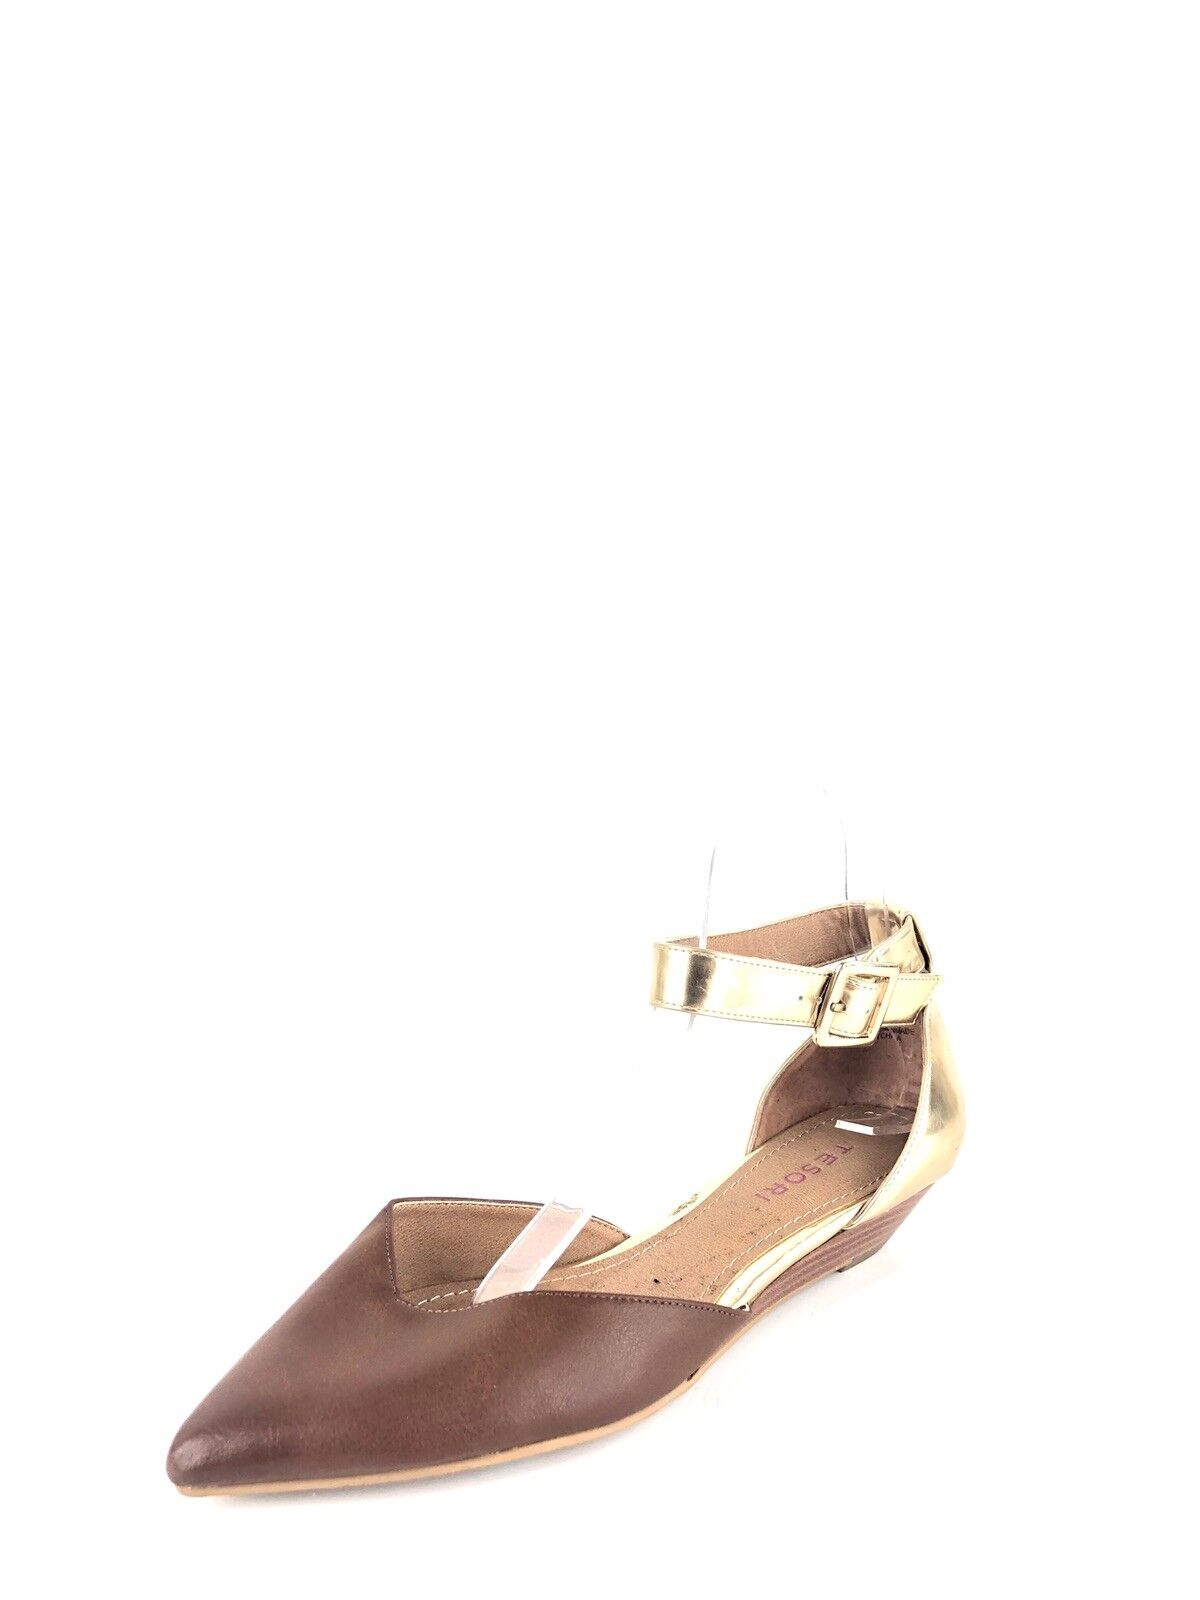 Tesori Annibell Women's Cognac Low Wedge Ankle Strap Pointy Flats Size 7 M